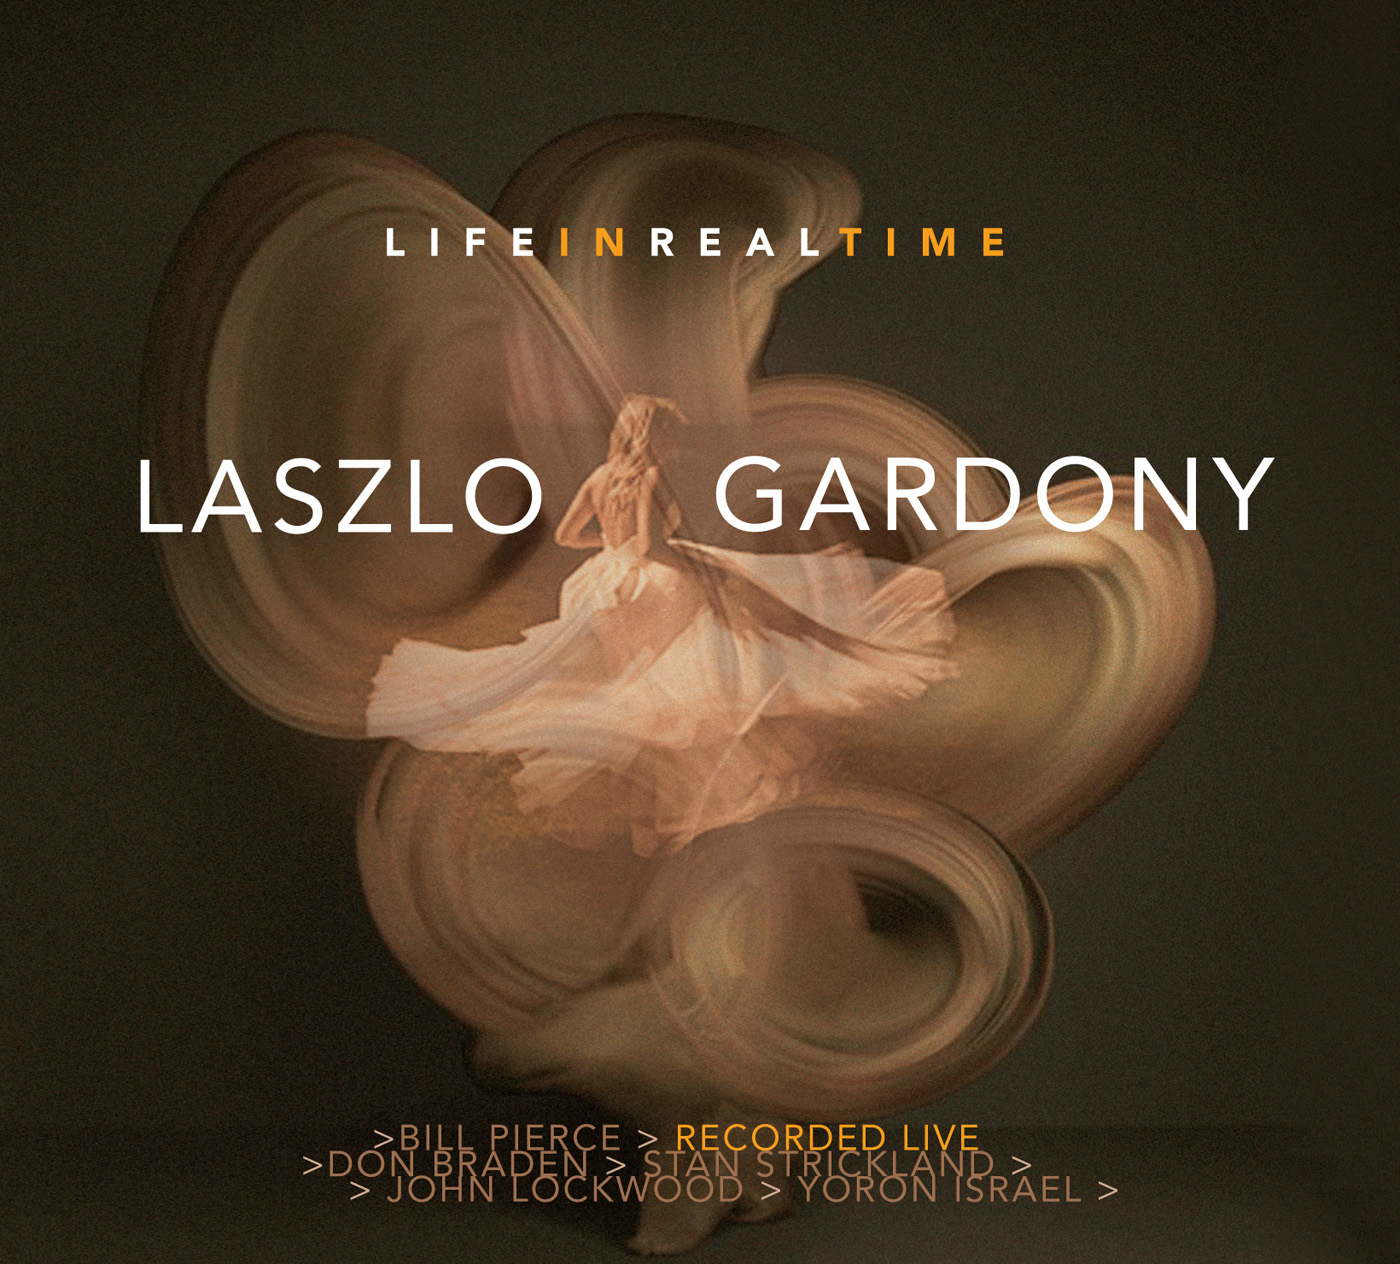 Life in Real Time  by Laszlo  Gardony cover